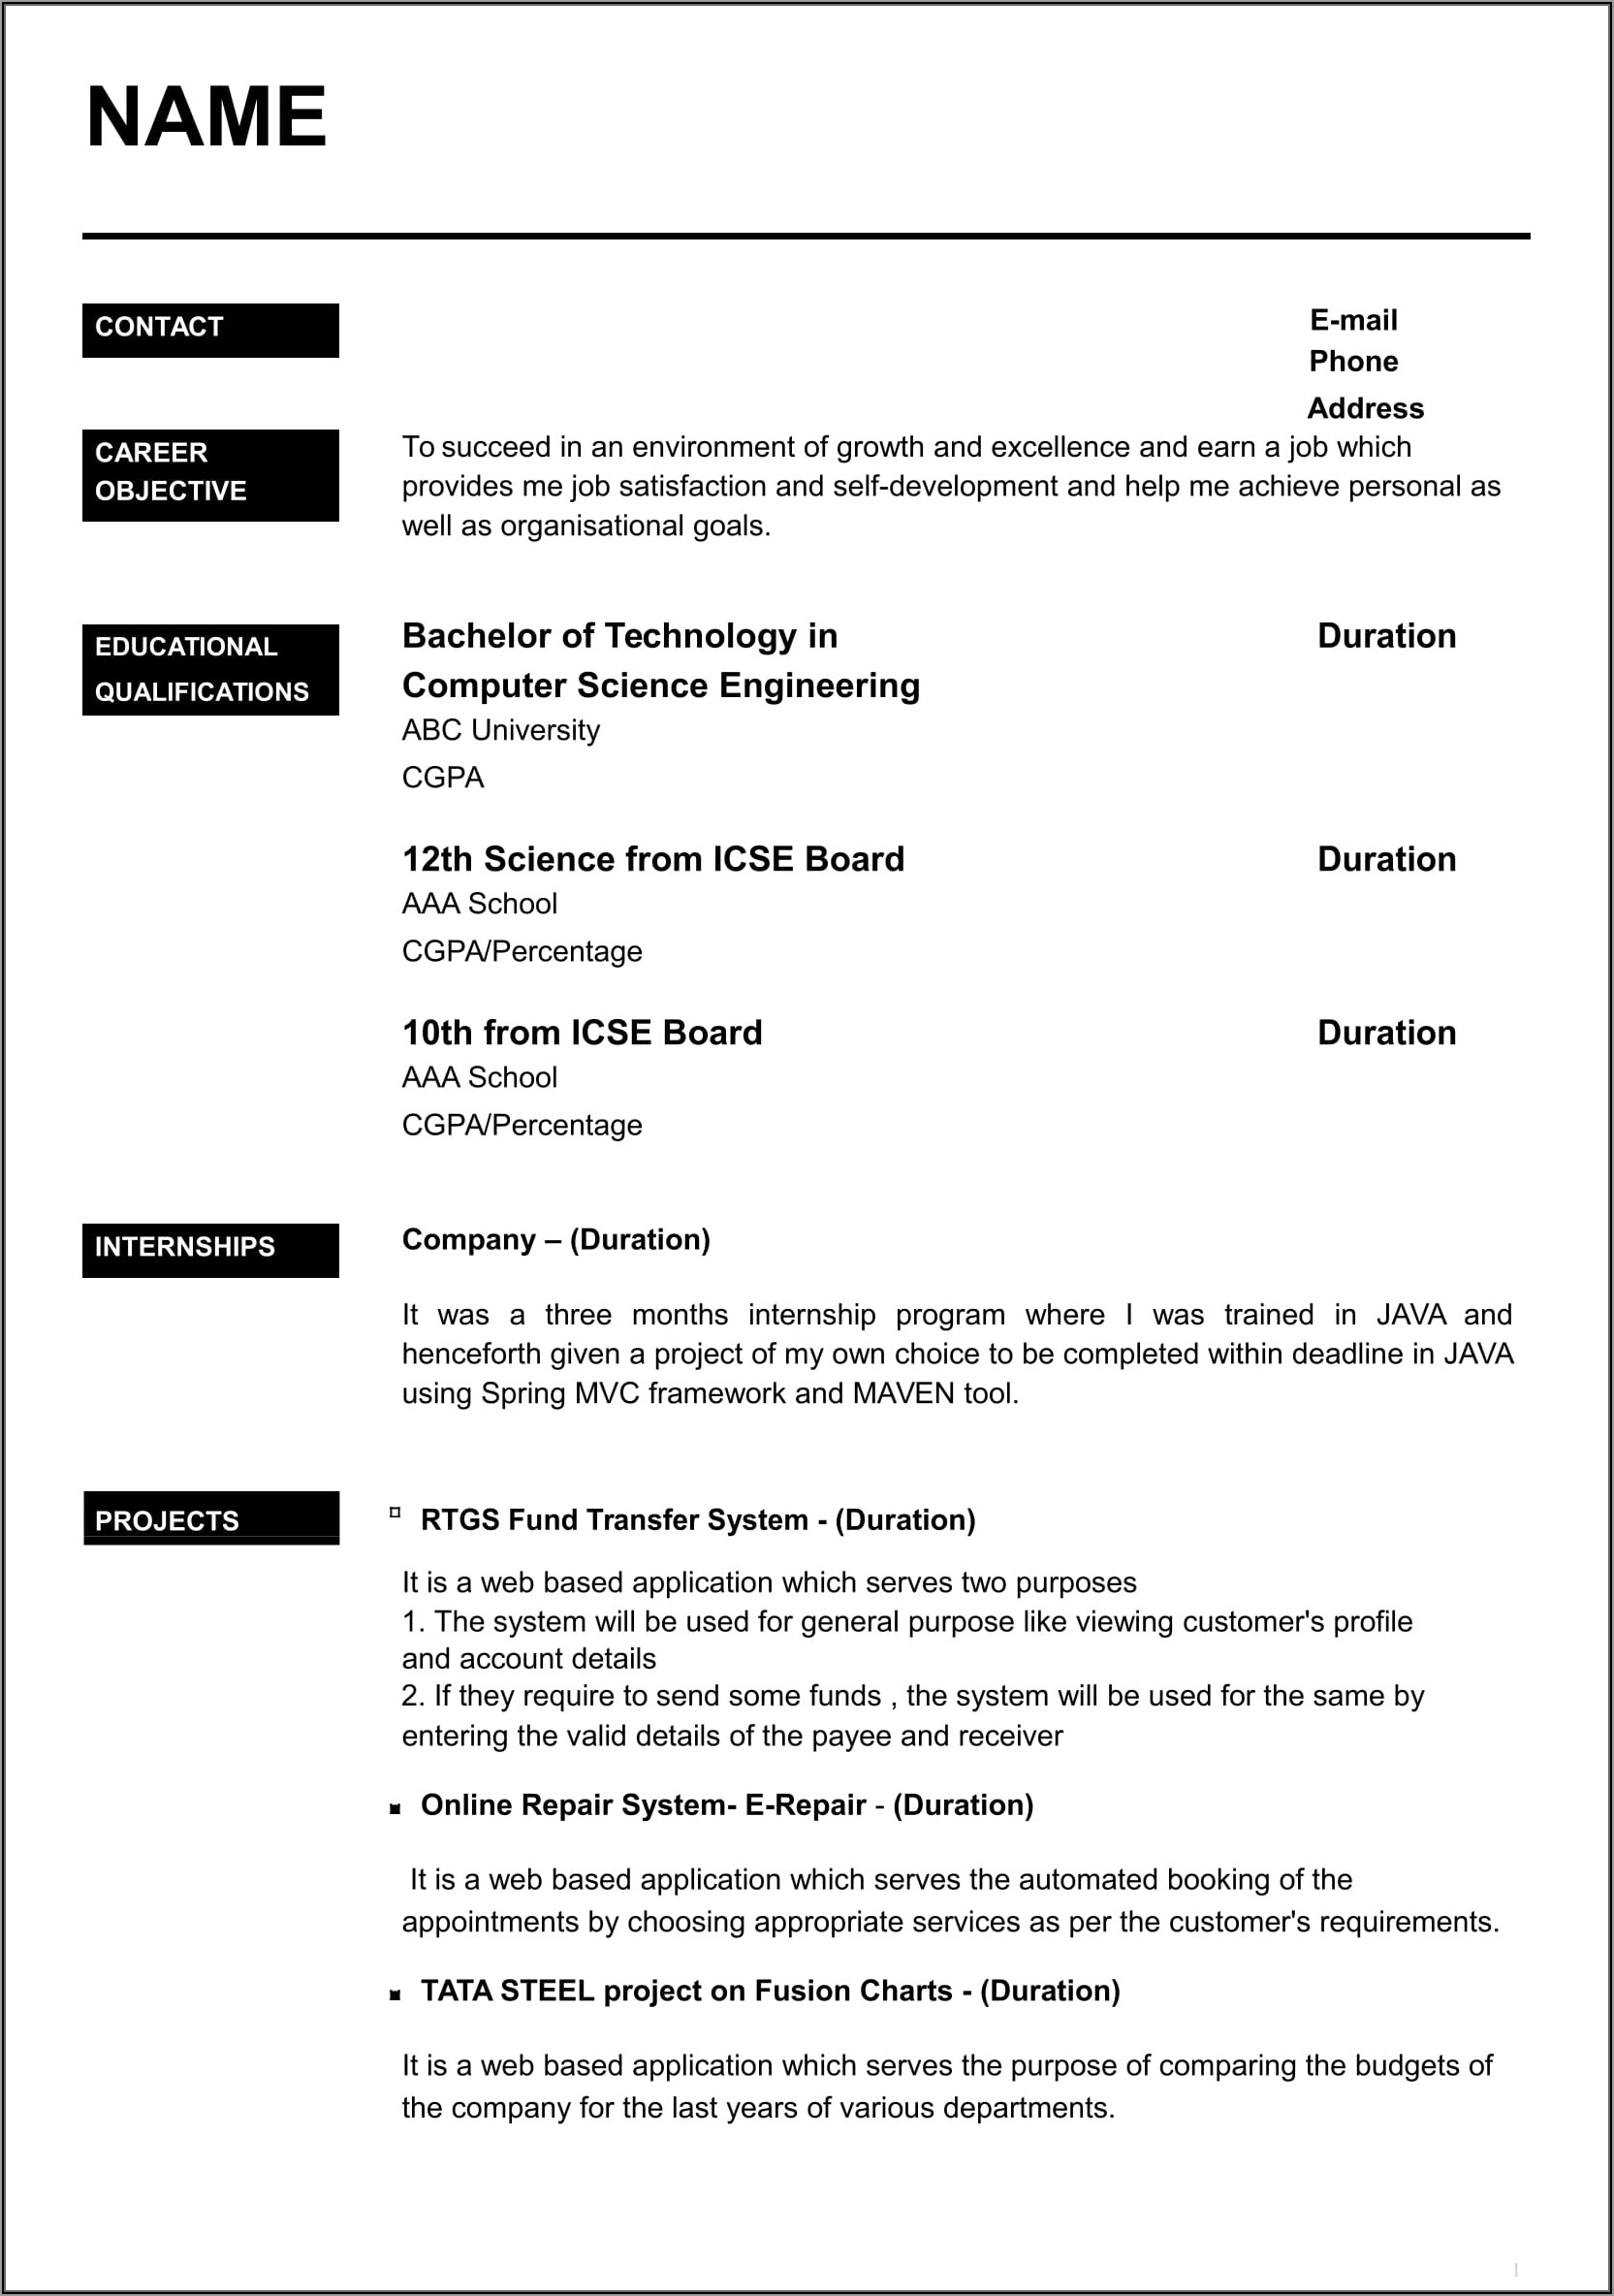 Format Of Resume Writing For Fresher